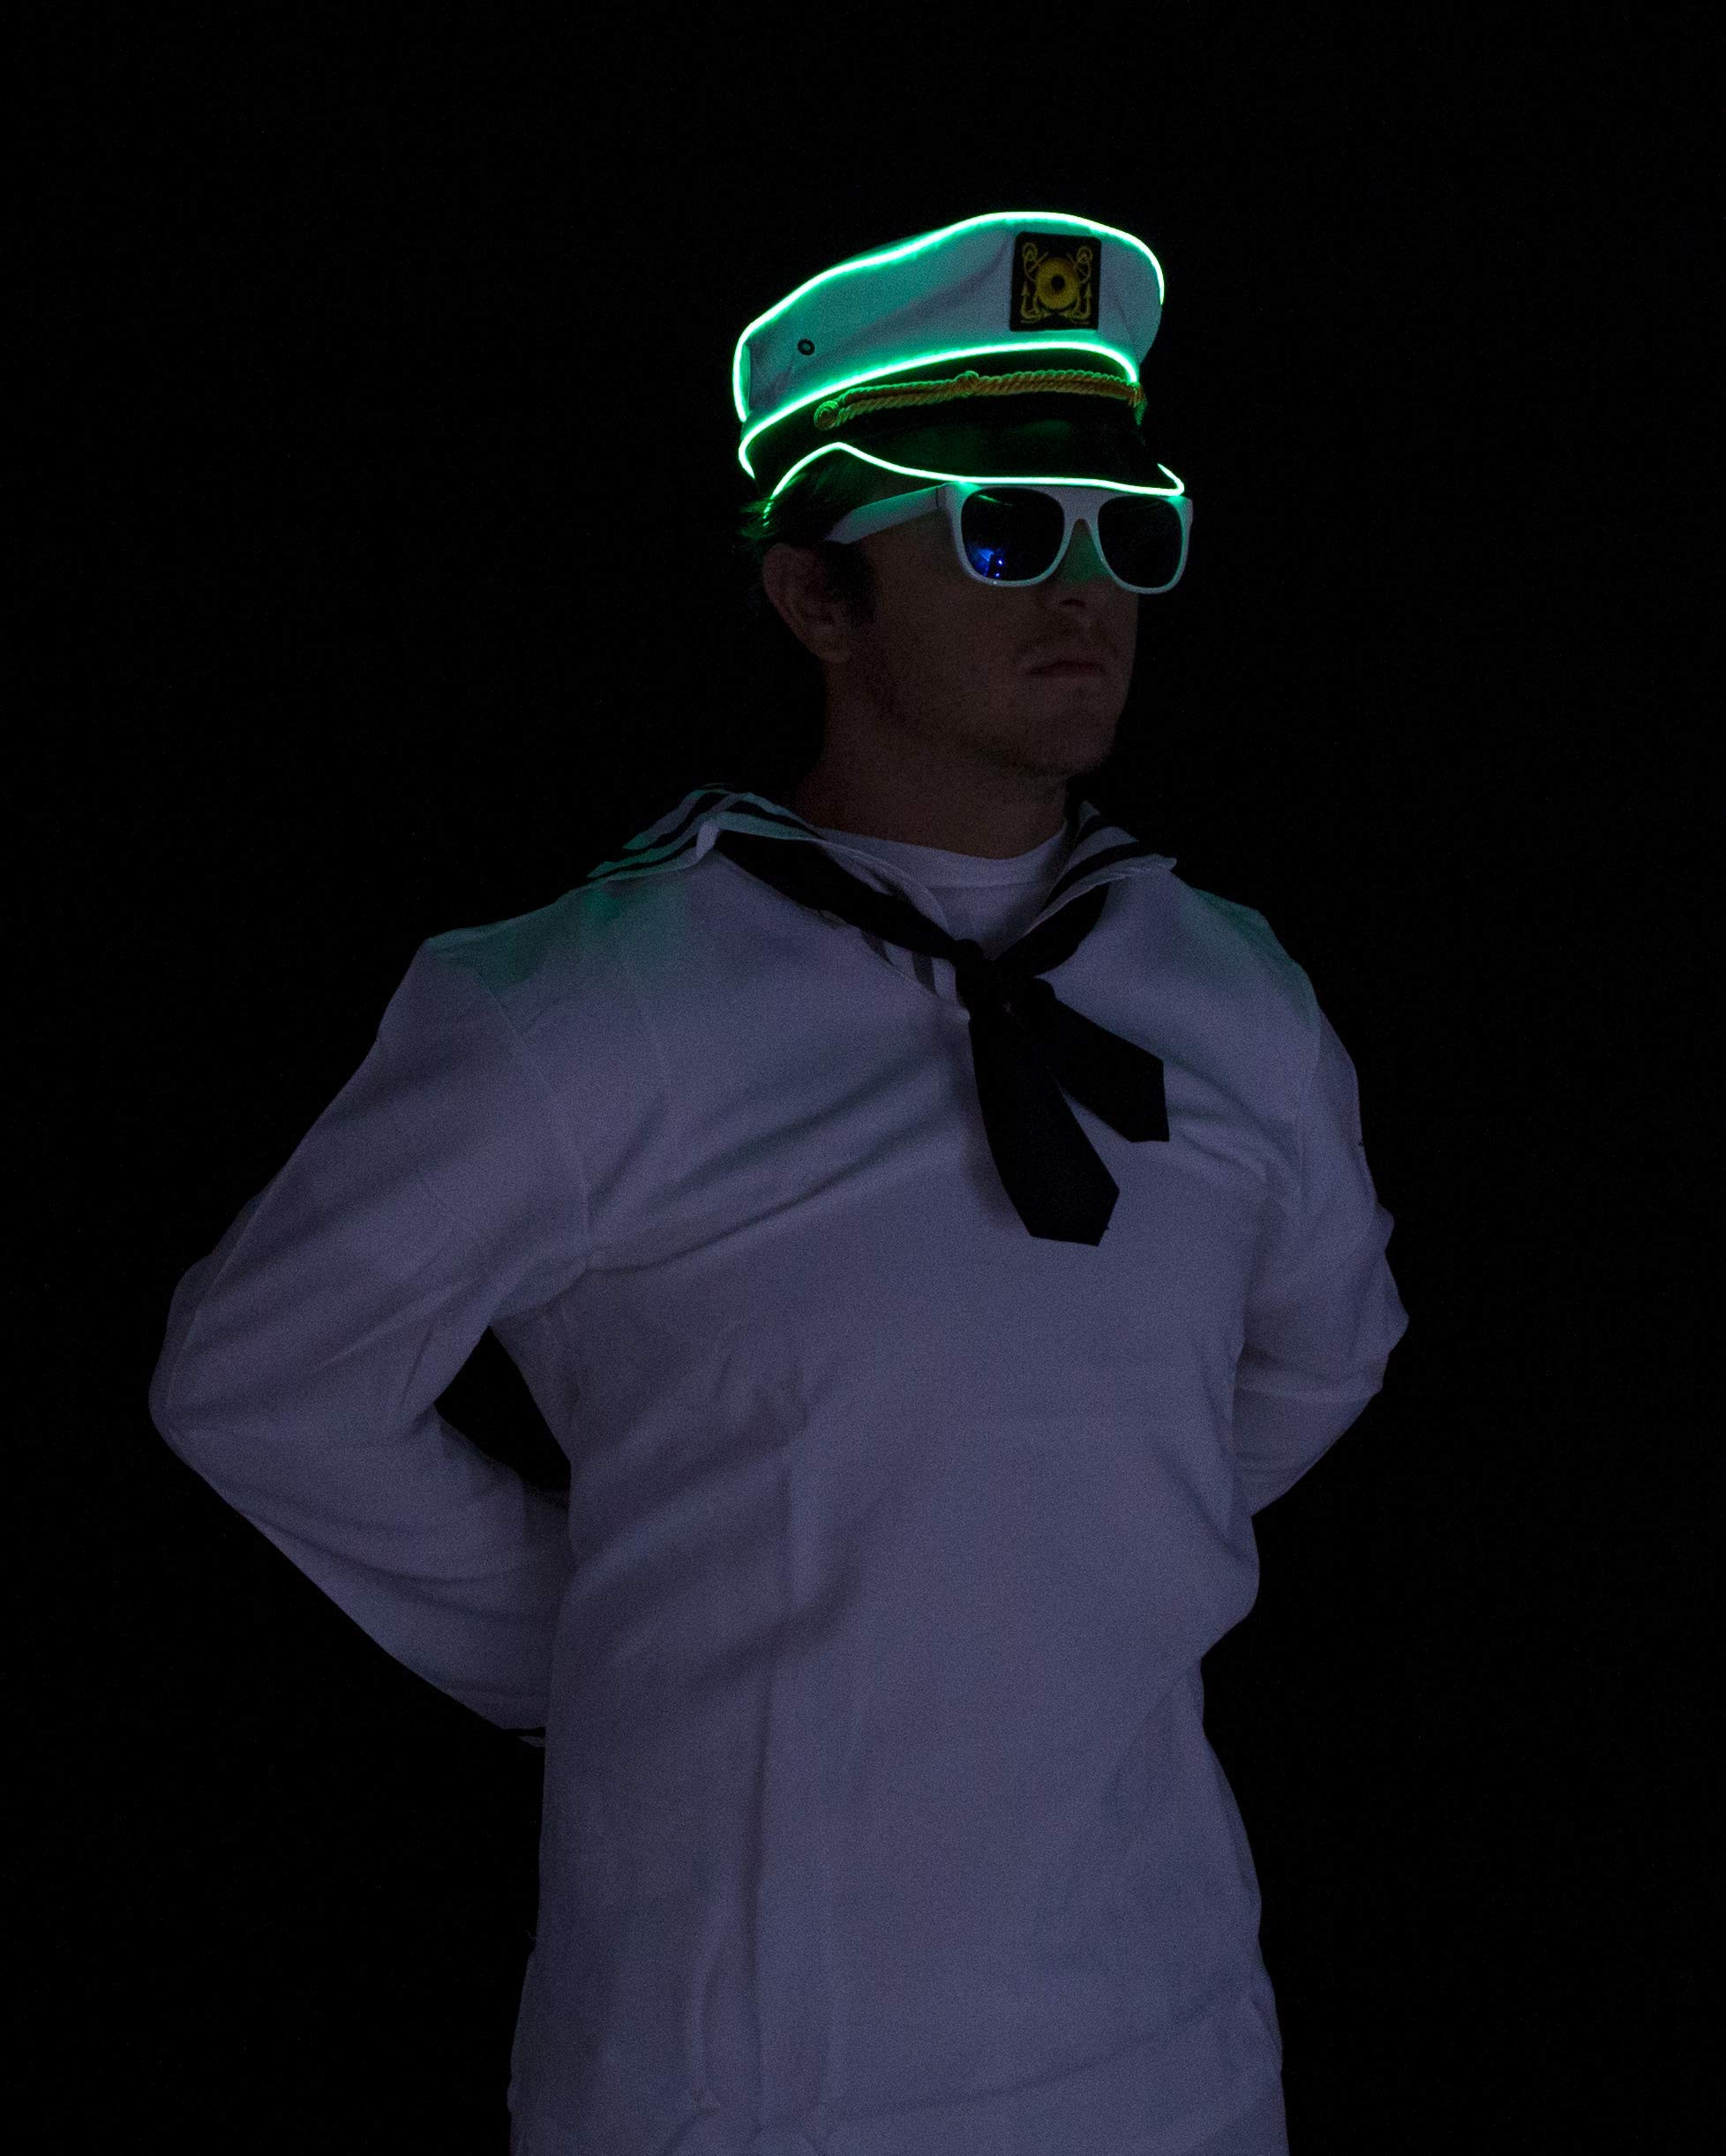 Electric Styles Sailor Hat - Lime Green LED by Electric Styles (Image #3)